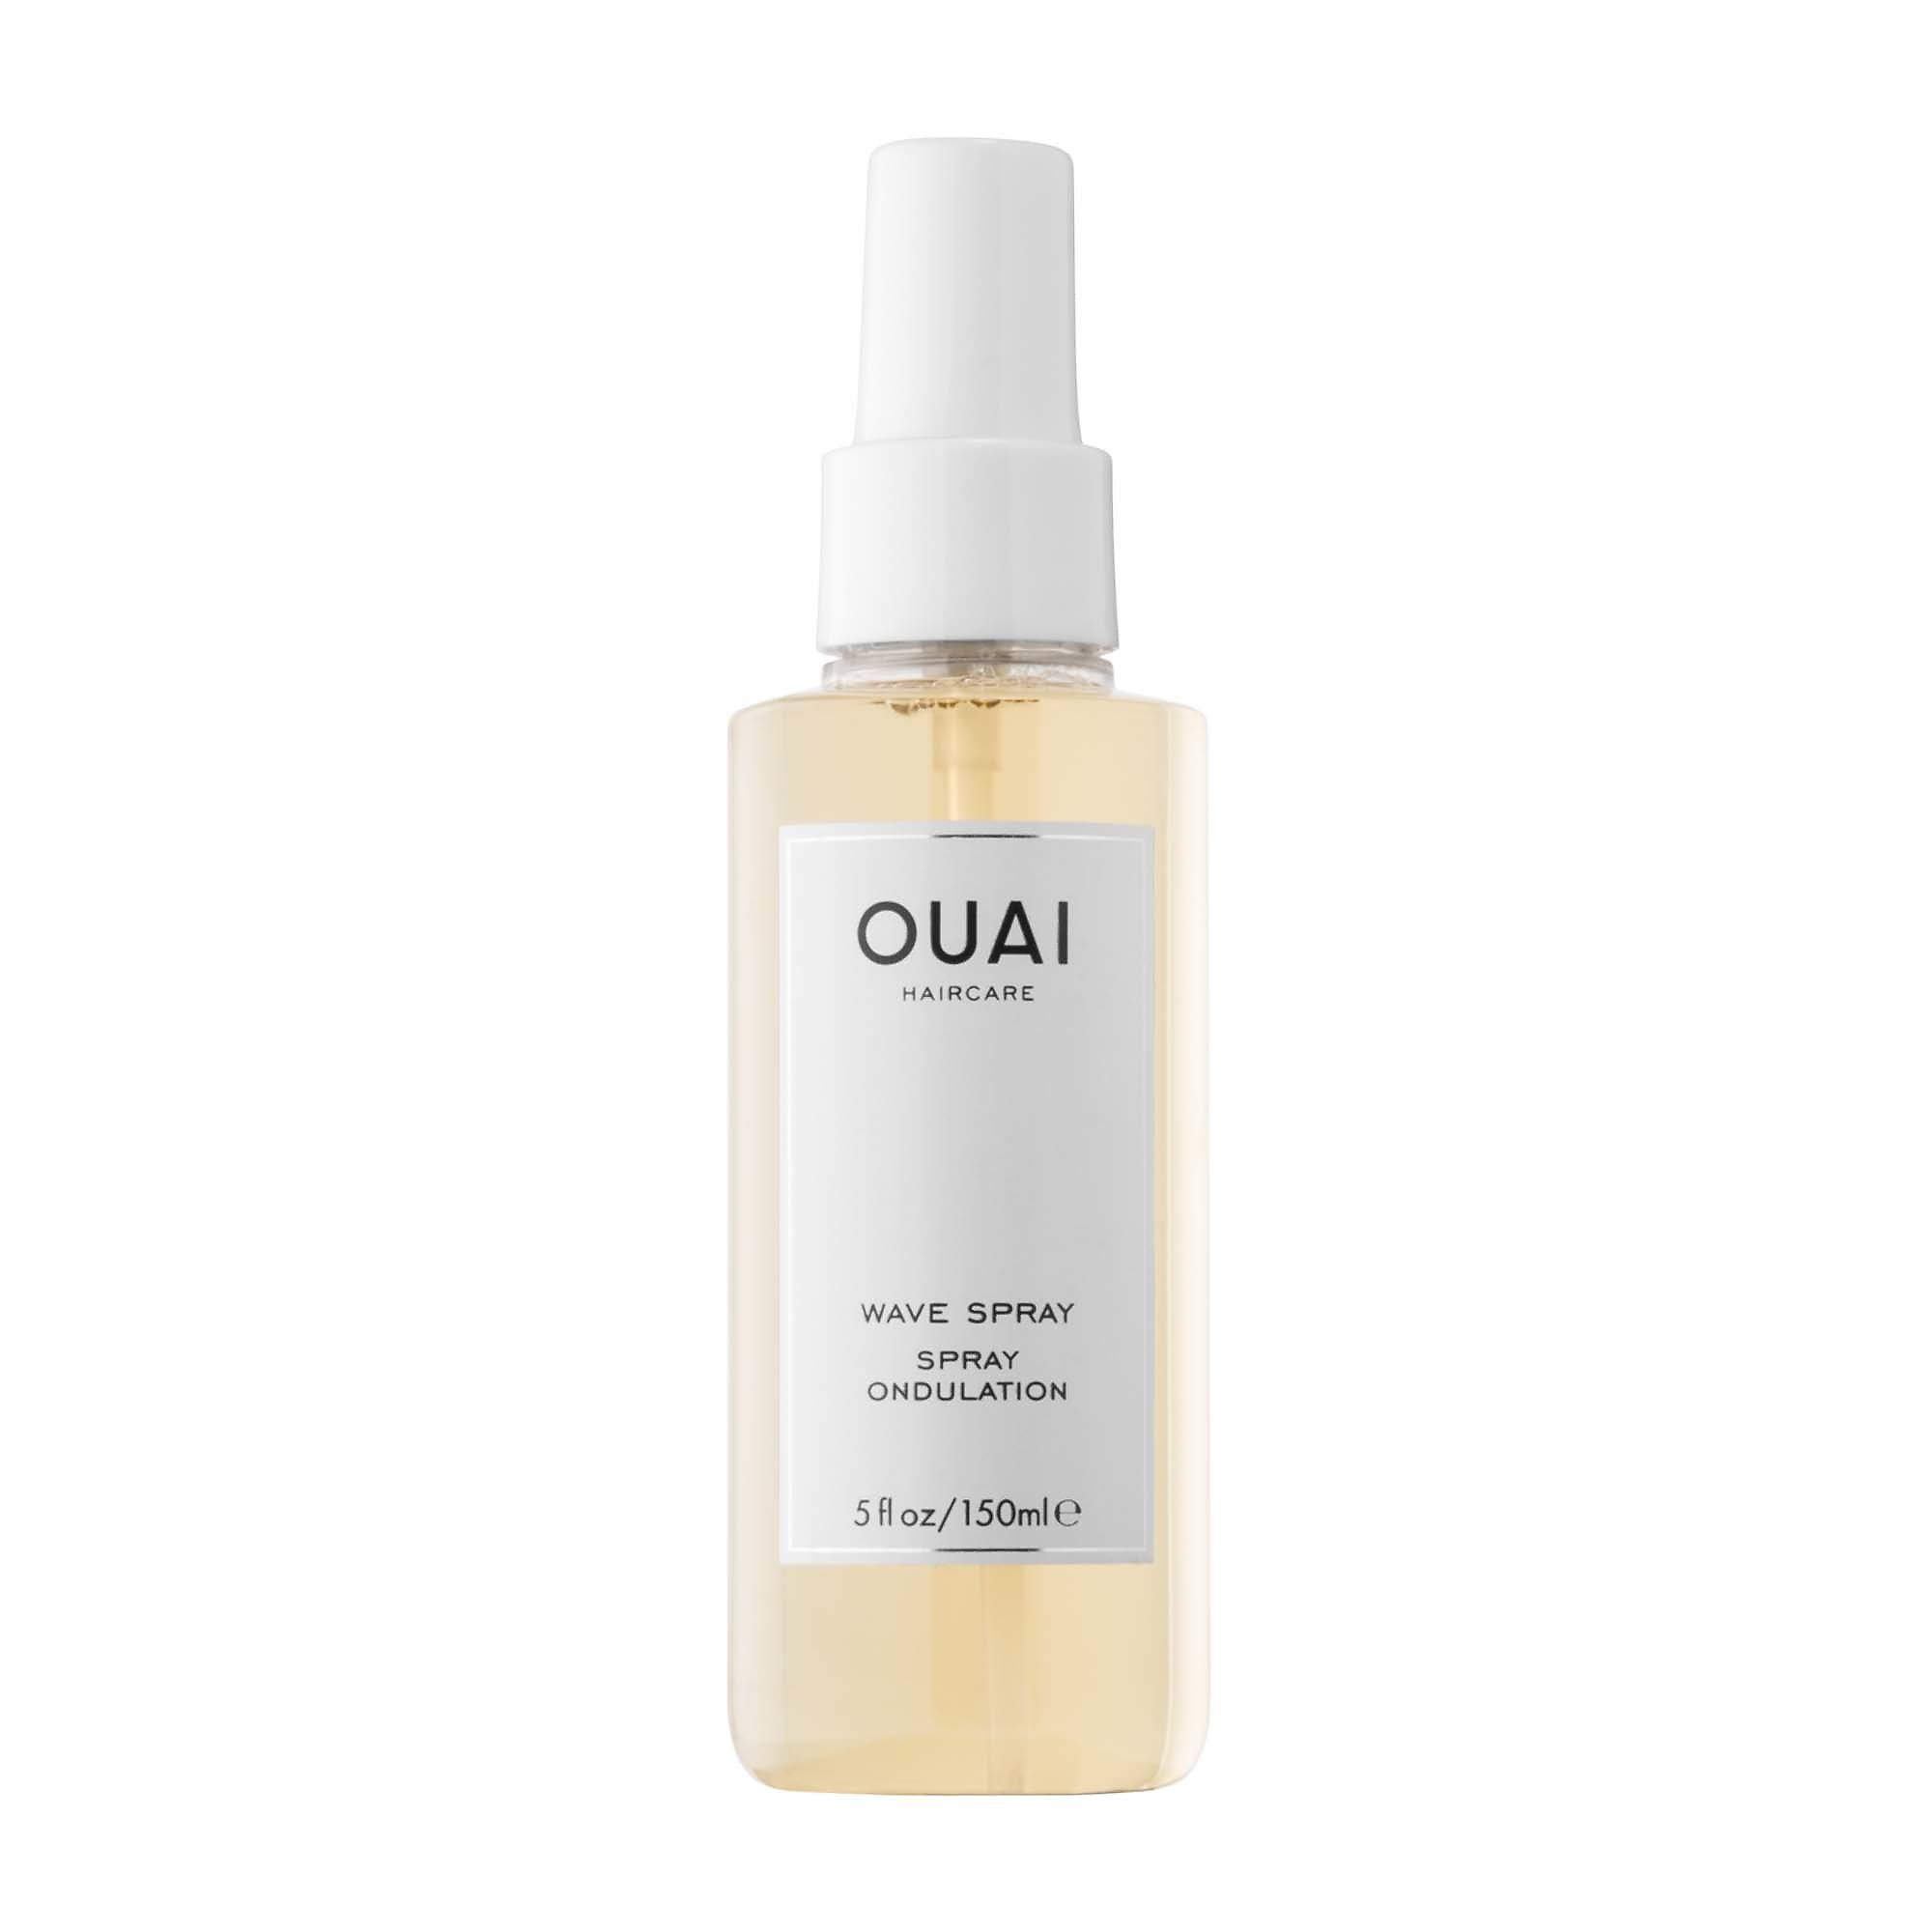 Shop Ouai S Wave Spray At Sephora This Weightless Texture Mist